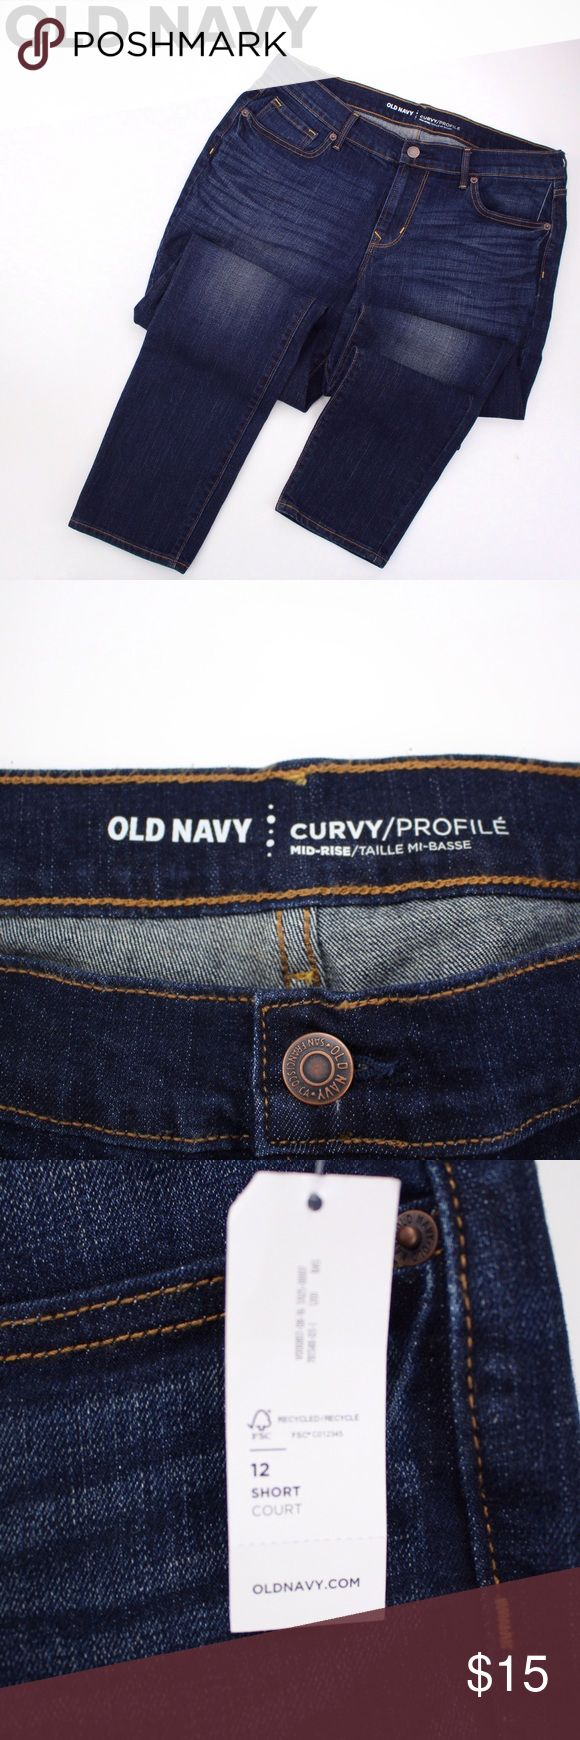 OLD NAVY Curvy Profile Skinny Jeans BNWT Old Navy Curvy Profile mid rise skinny jeans. Jeans Skinny